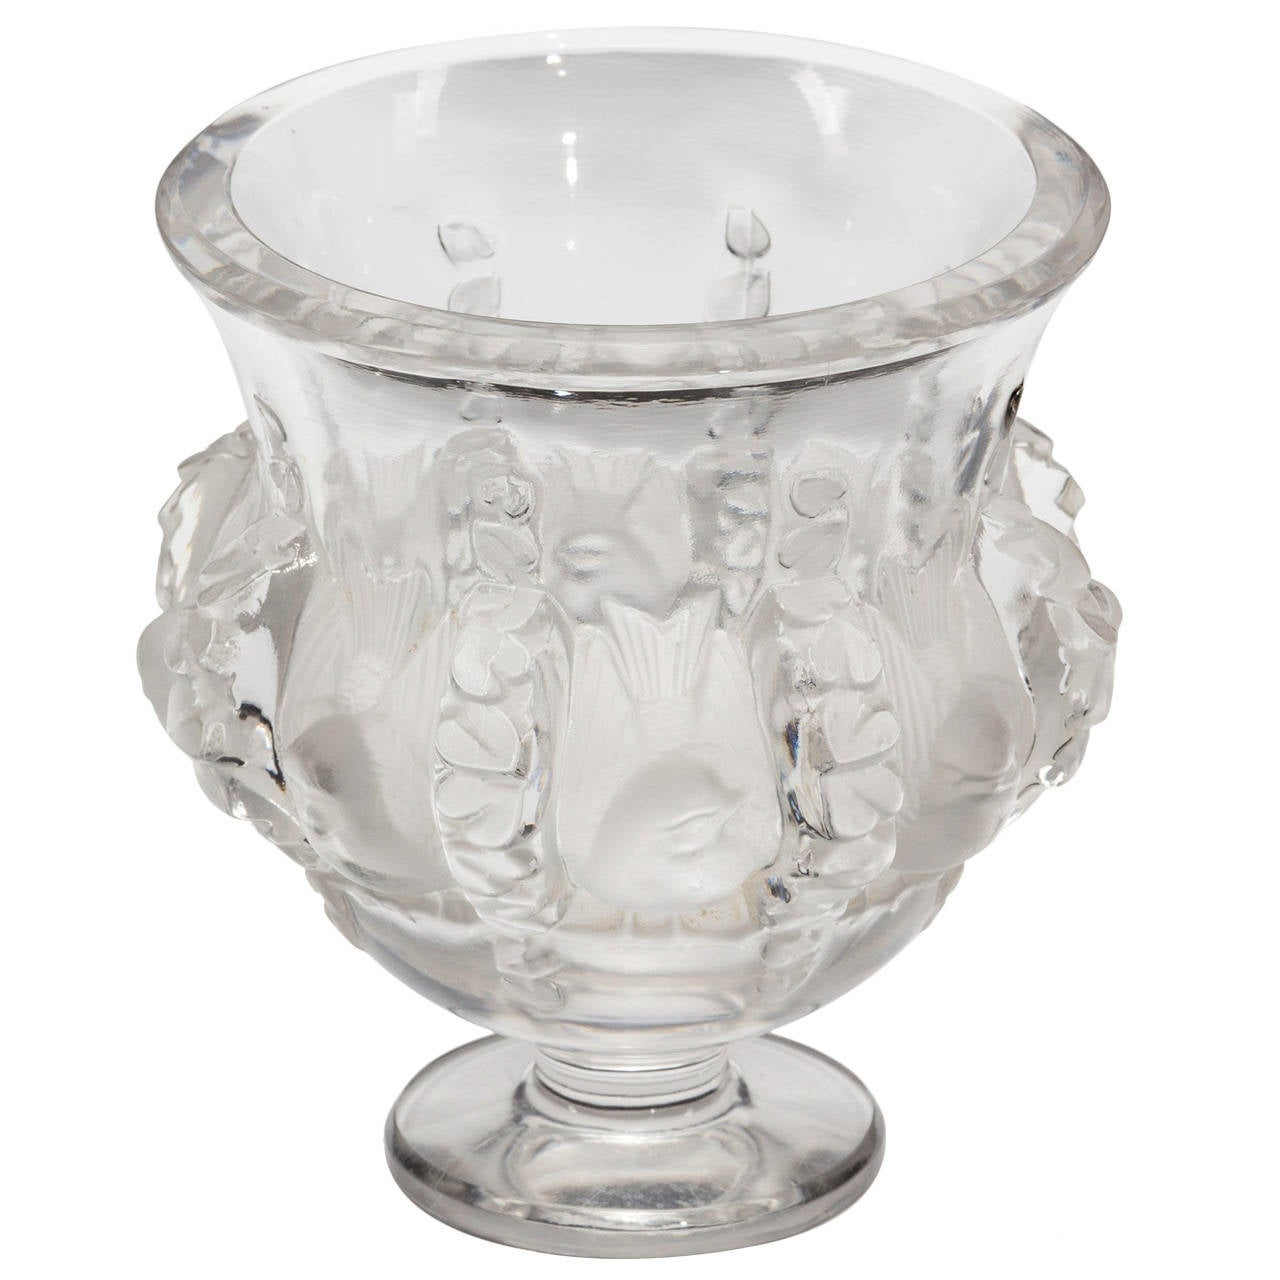 1930s lalique dampierre vase at 1stdibs for Lalique vase